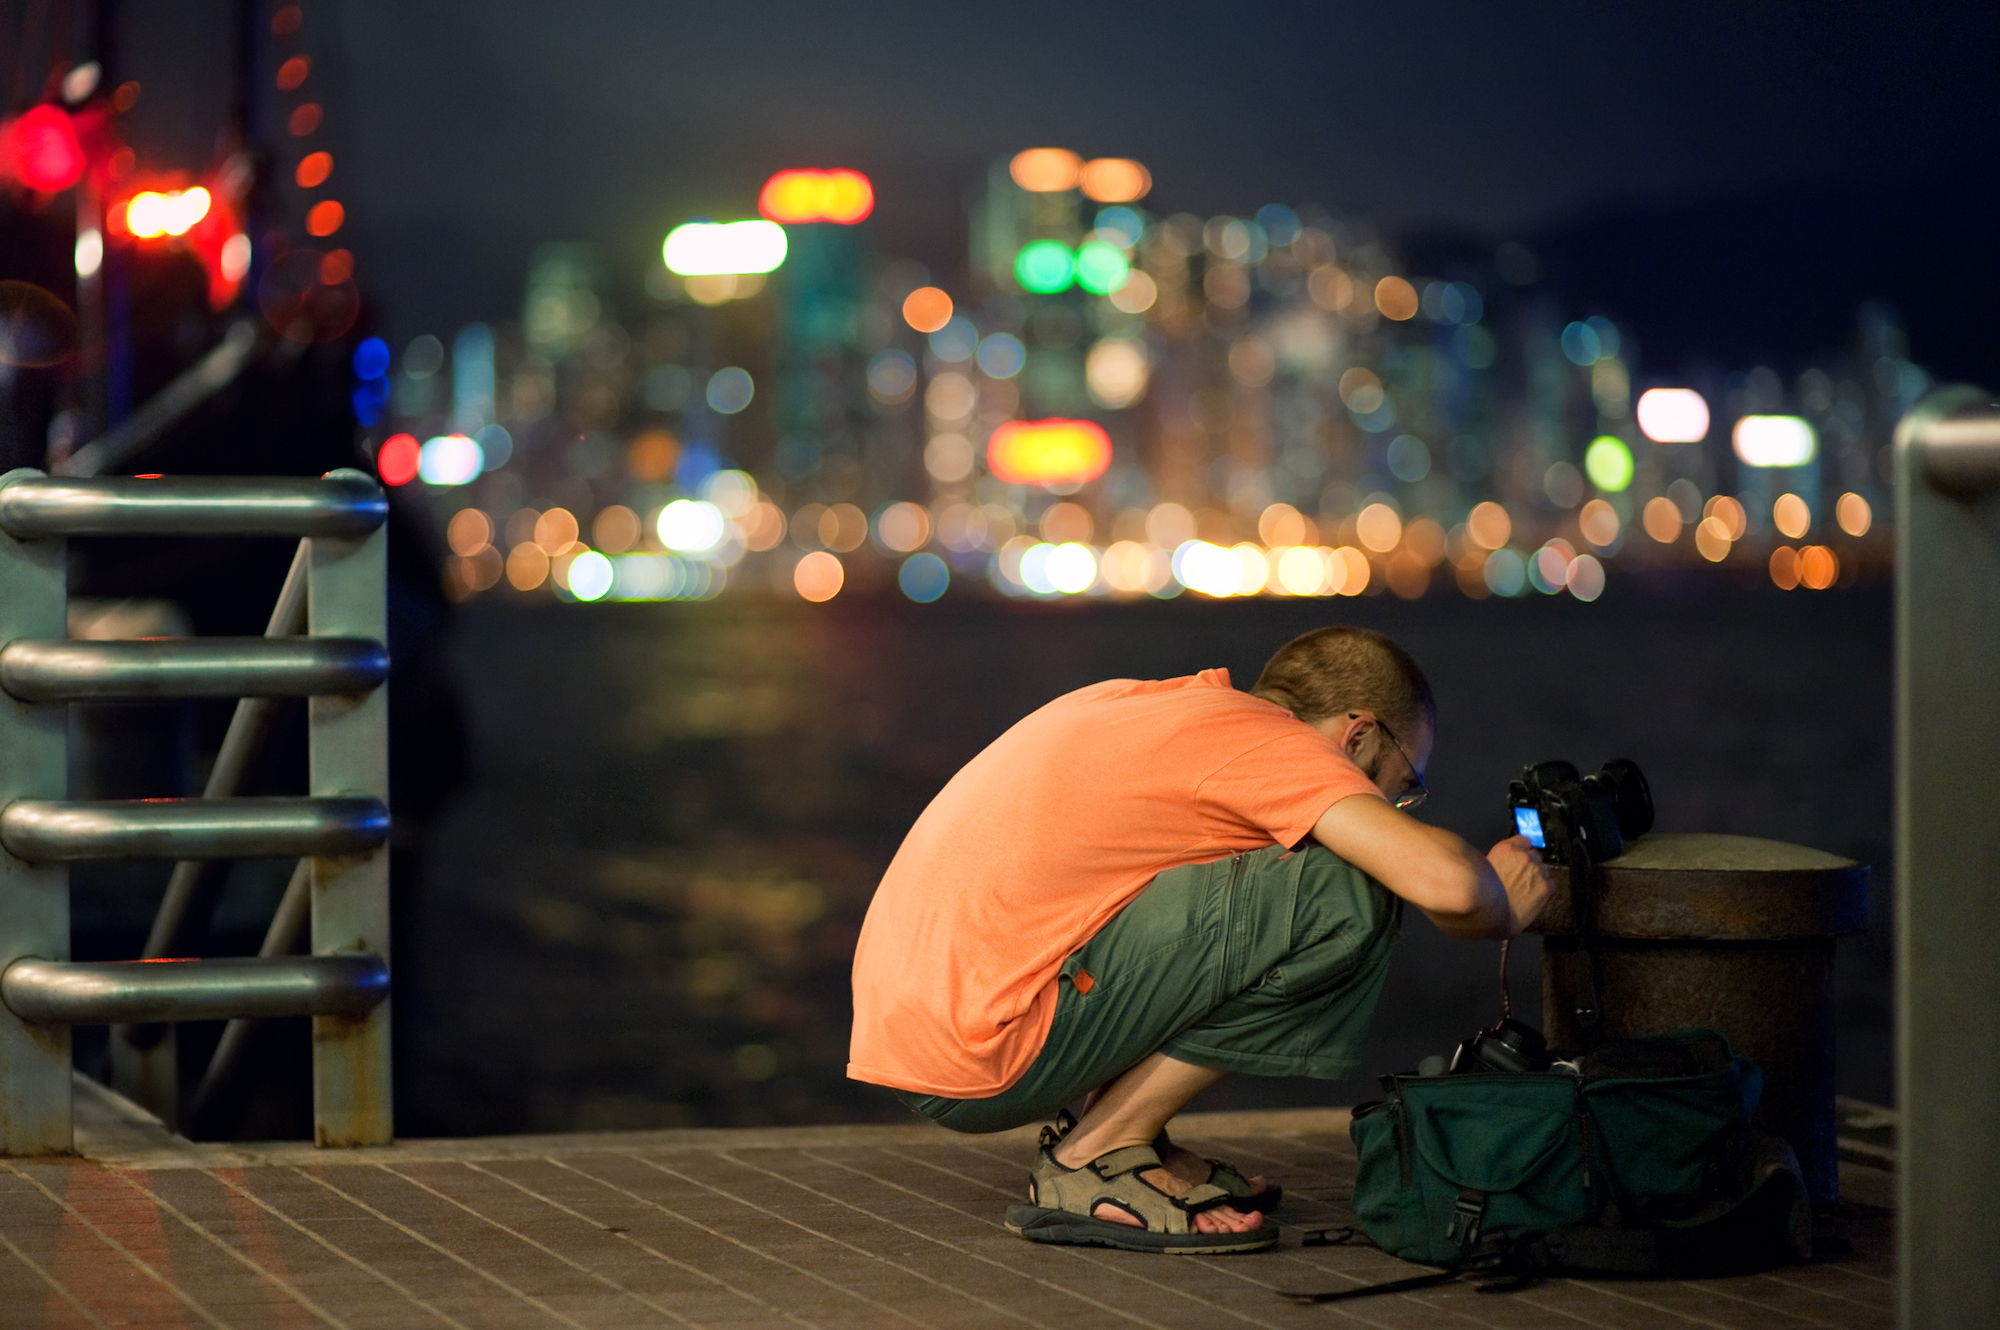 A photographer looks at the back of his camera against a night time cityscape